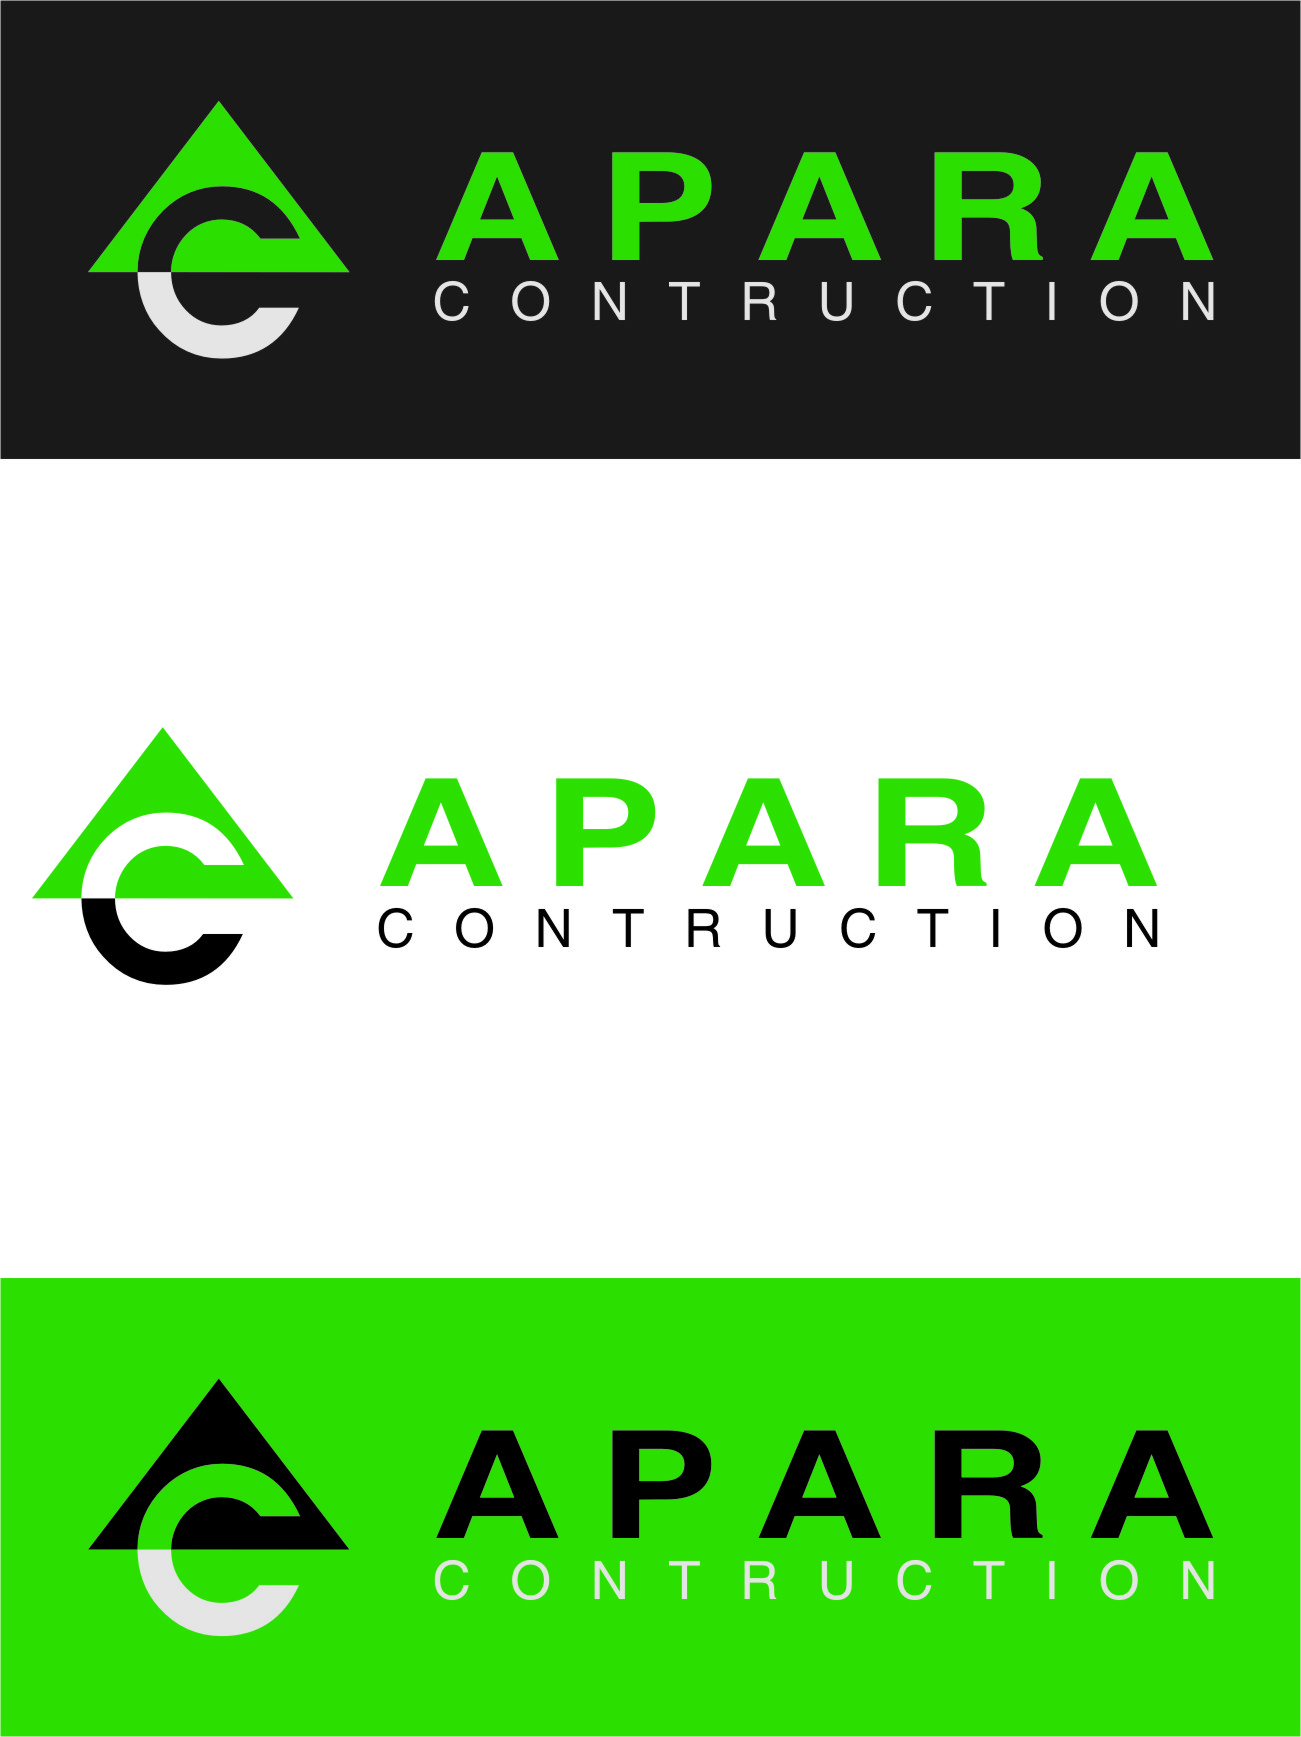 Logo Design by RasYa Muhammad Athaya - Entry No. 196 in the Logo Design Contest Apara Construction Logo Design.